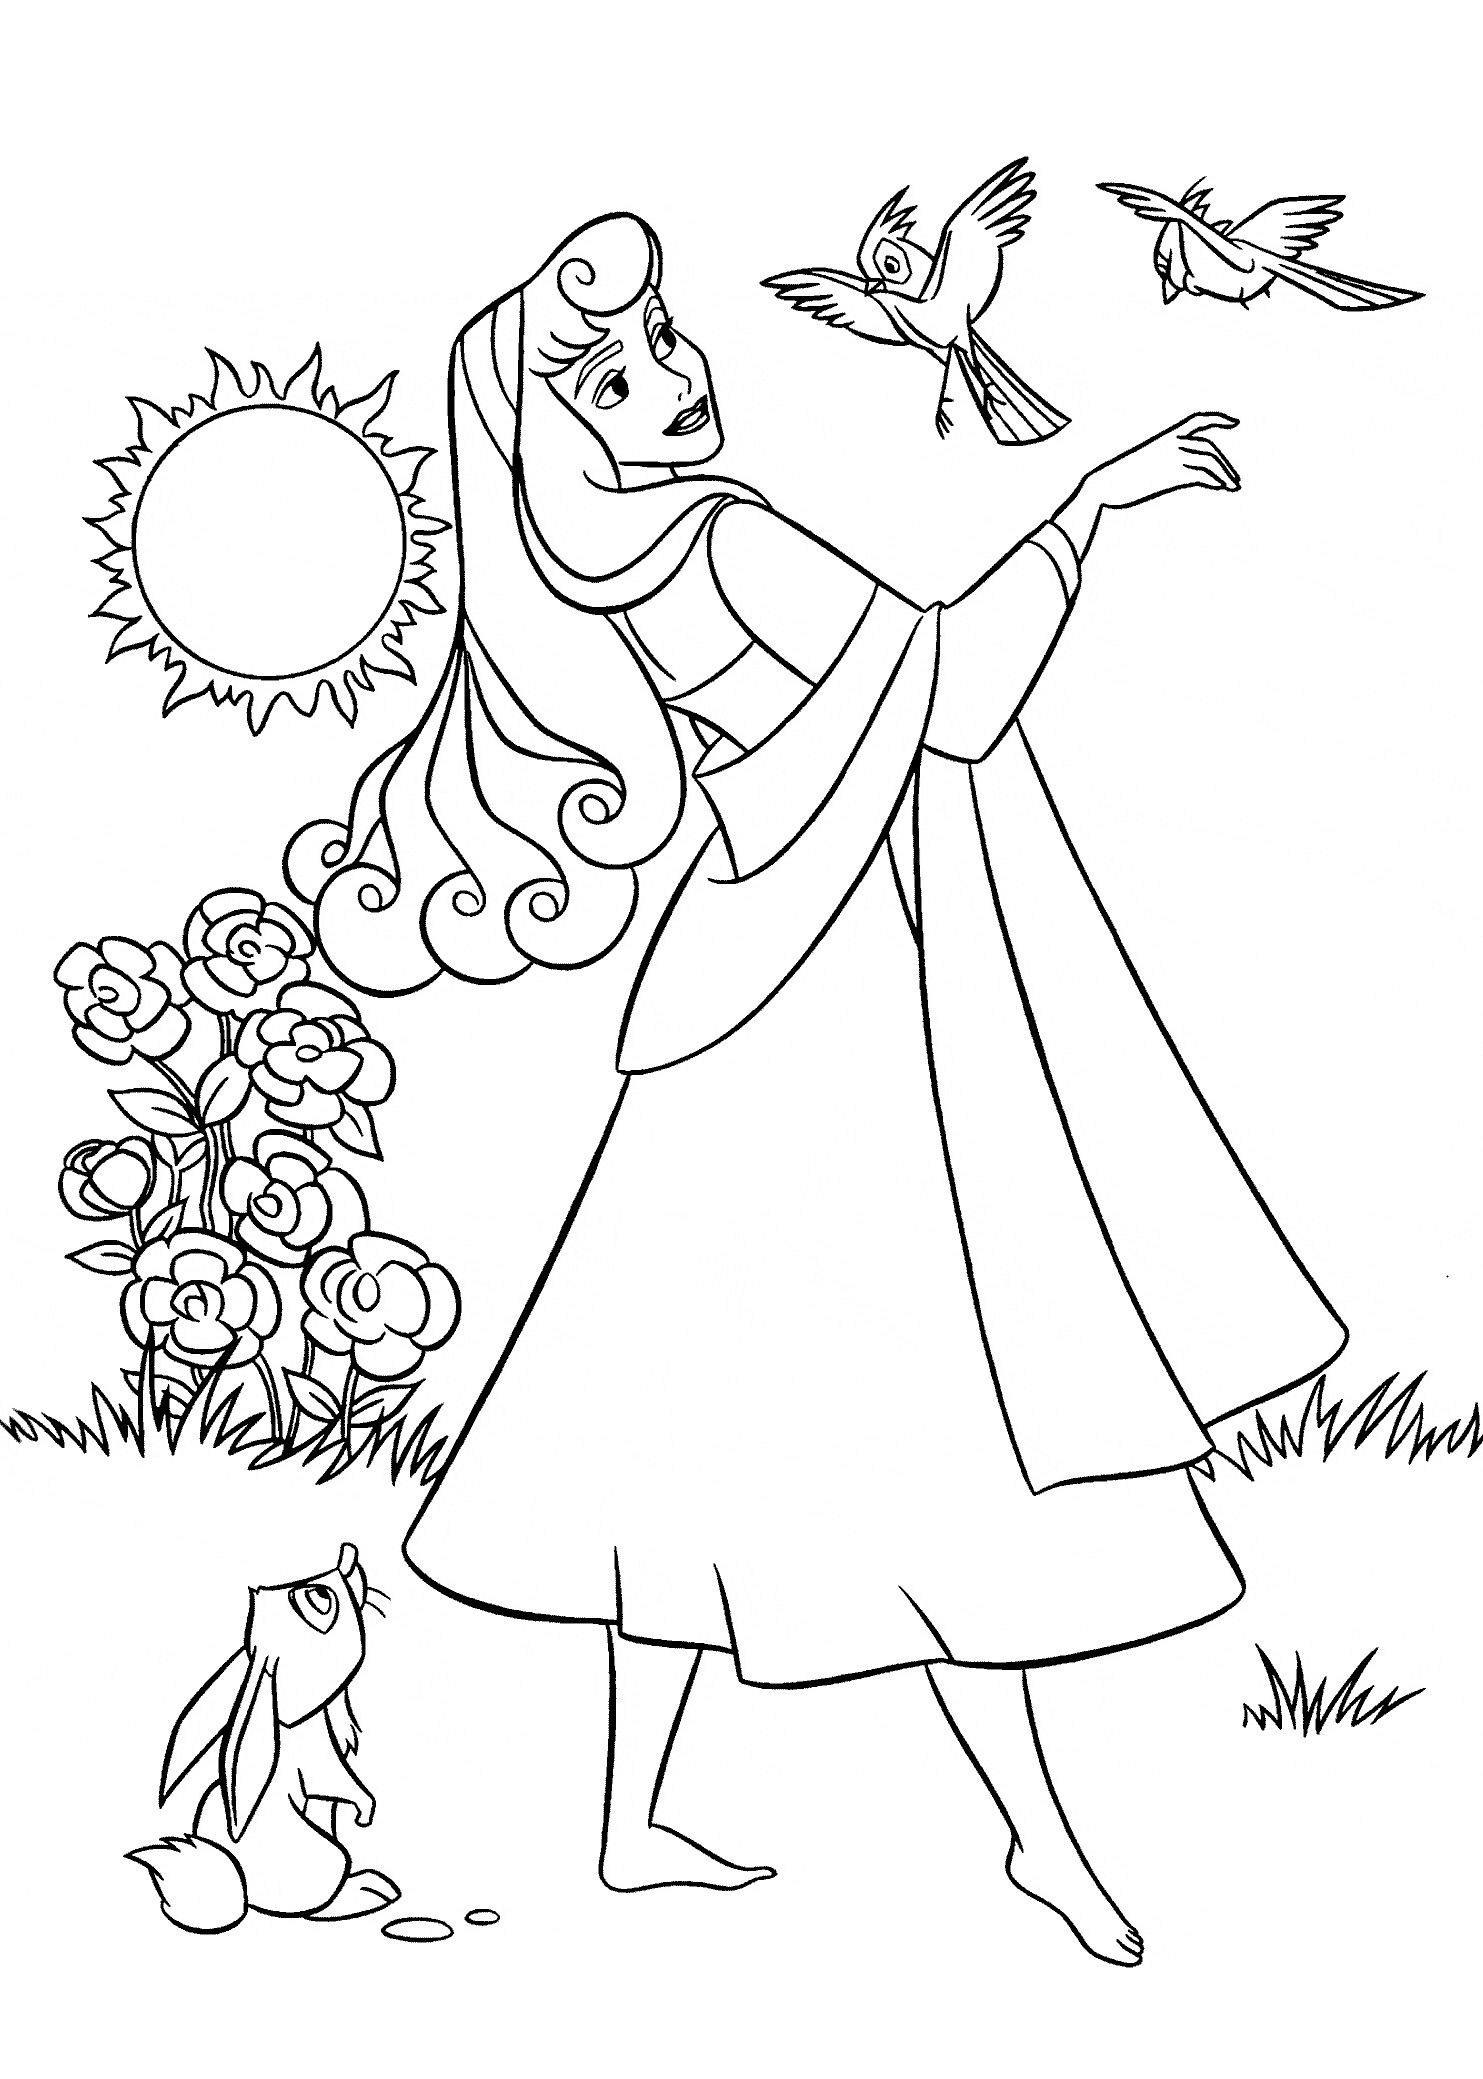 Princess Aurora Coloring Pages From The Thousand Pictures Online Concerning Princess Aurora Coloring Pages We Choices The Very Best Selections Sketsa Gambar